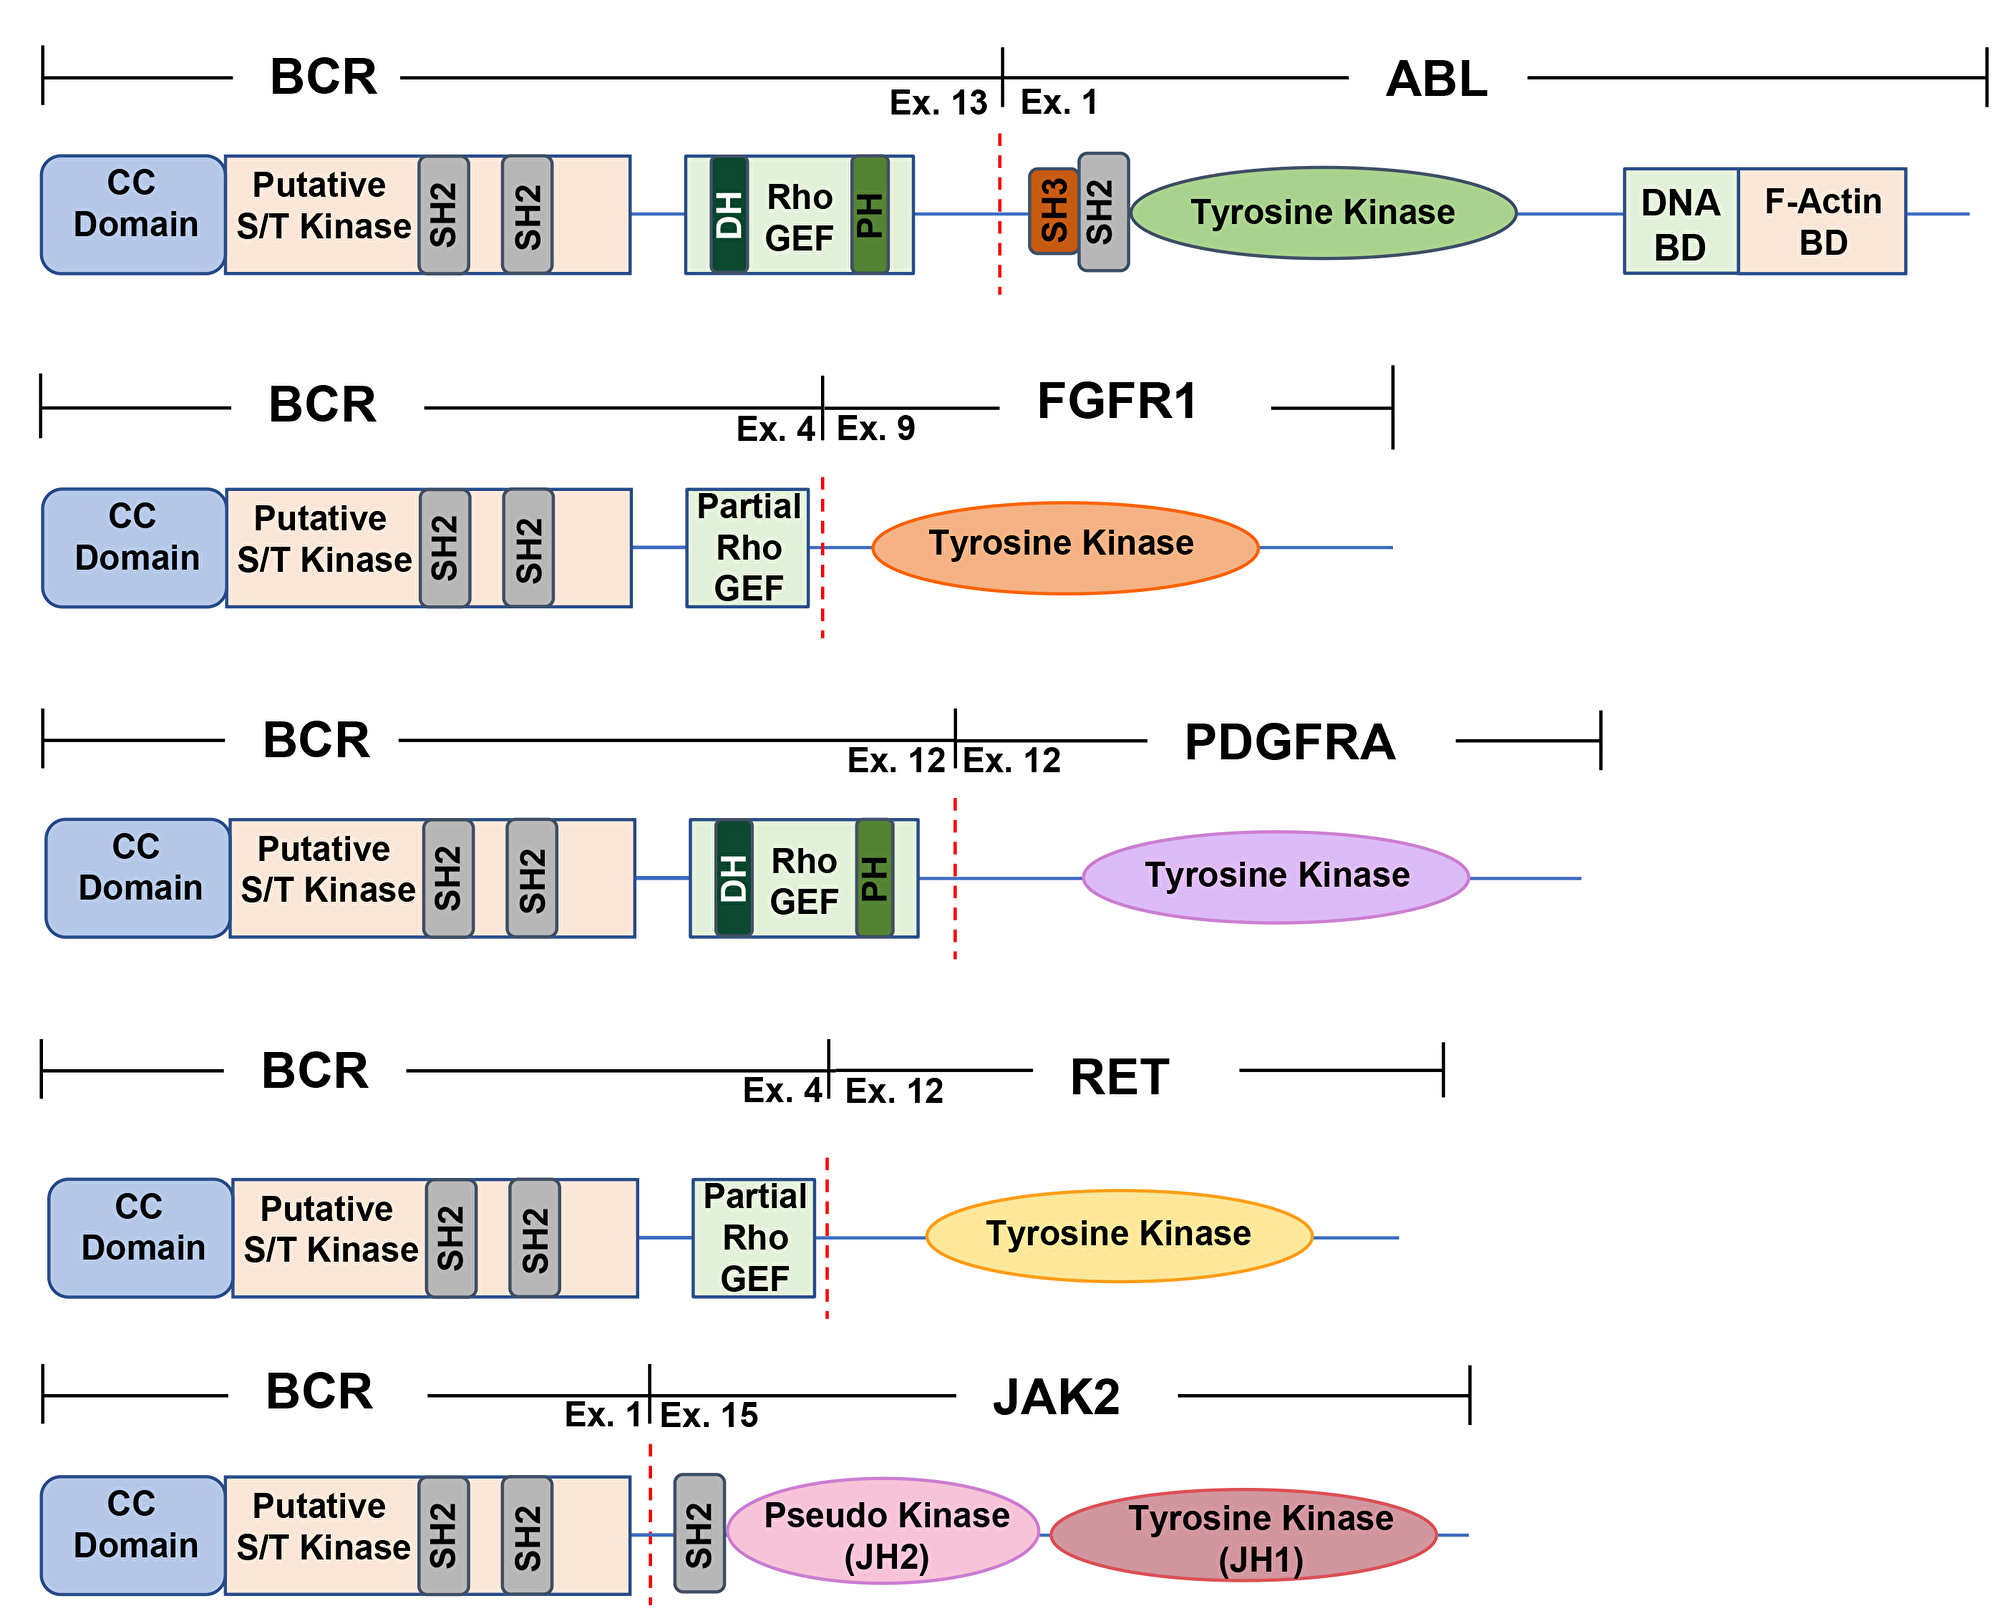 A schematic representation of commonly found BCR fusion proteins.